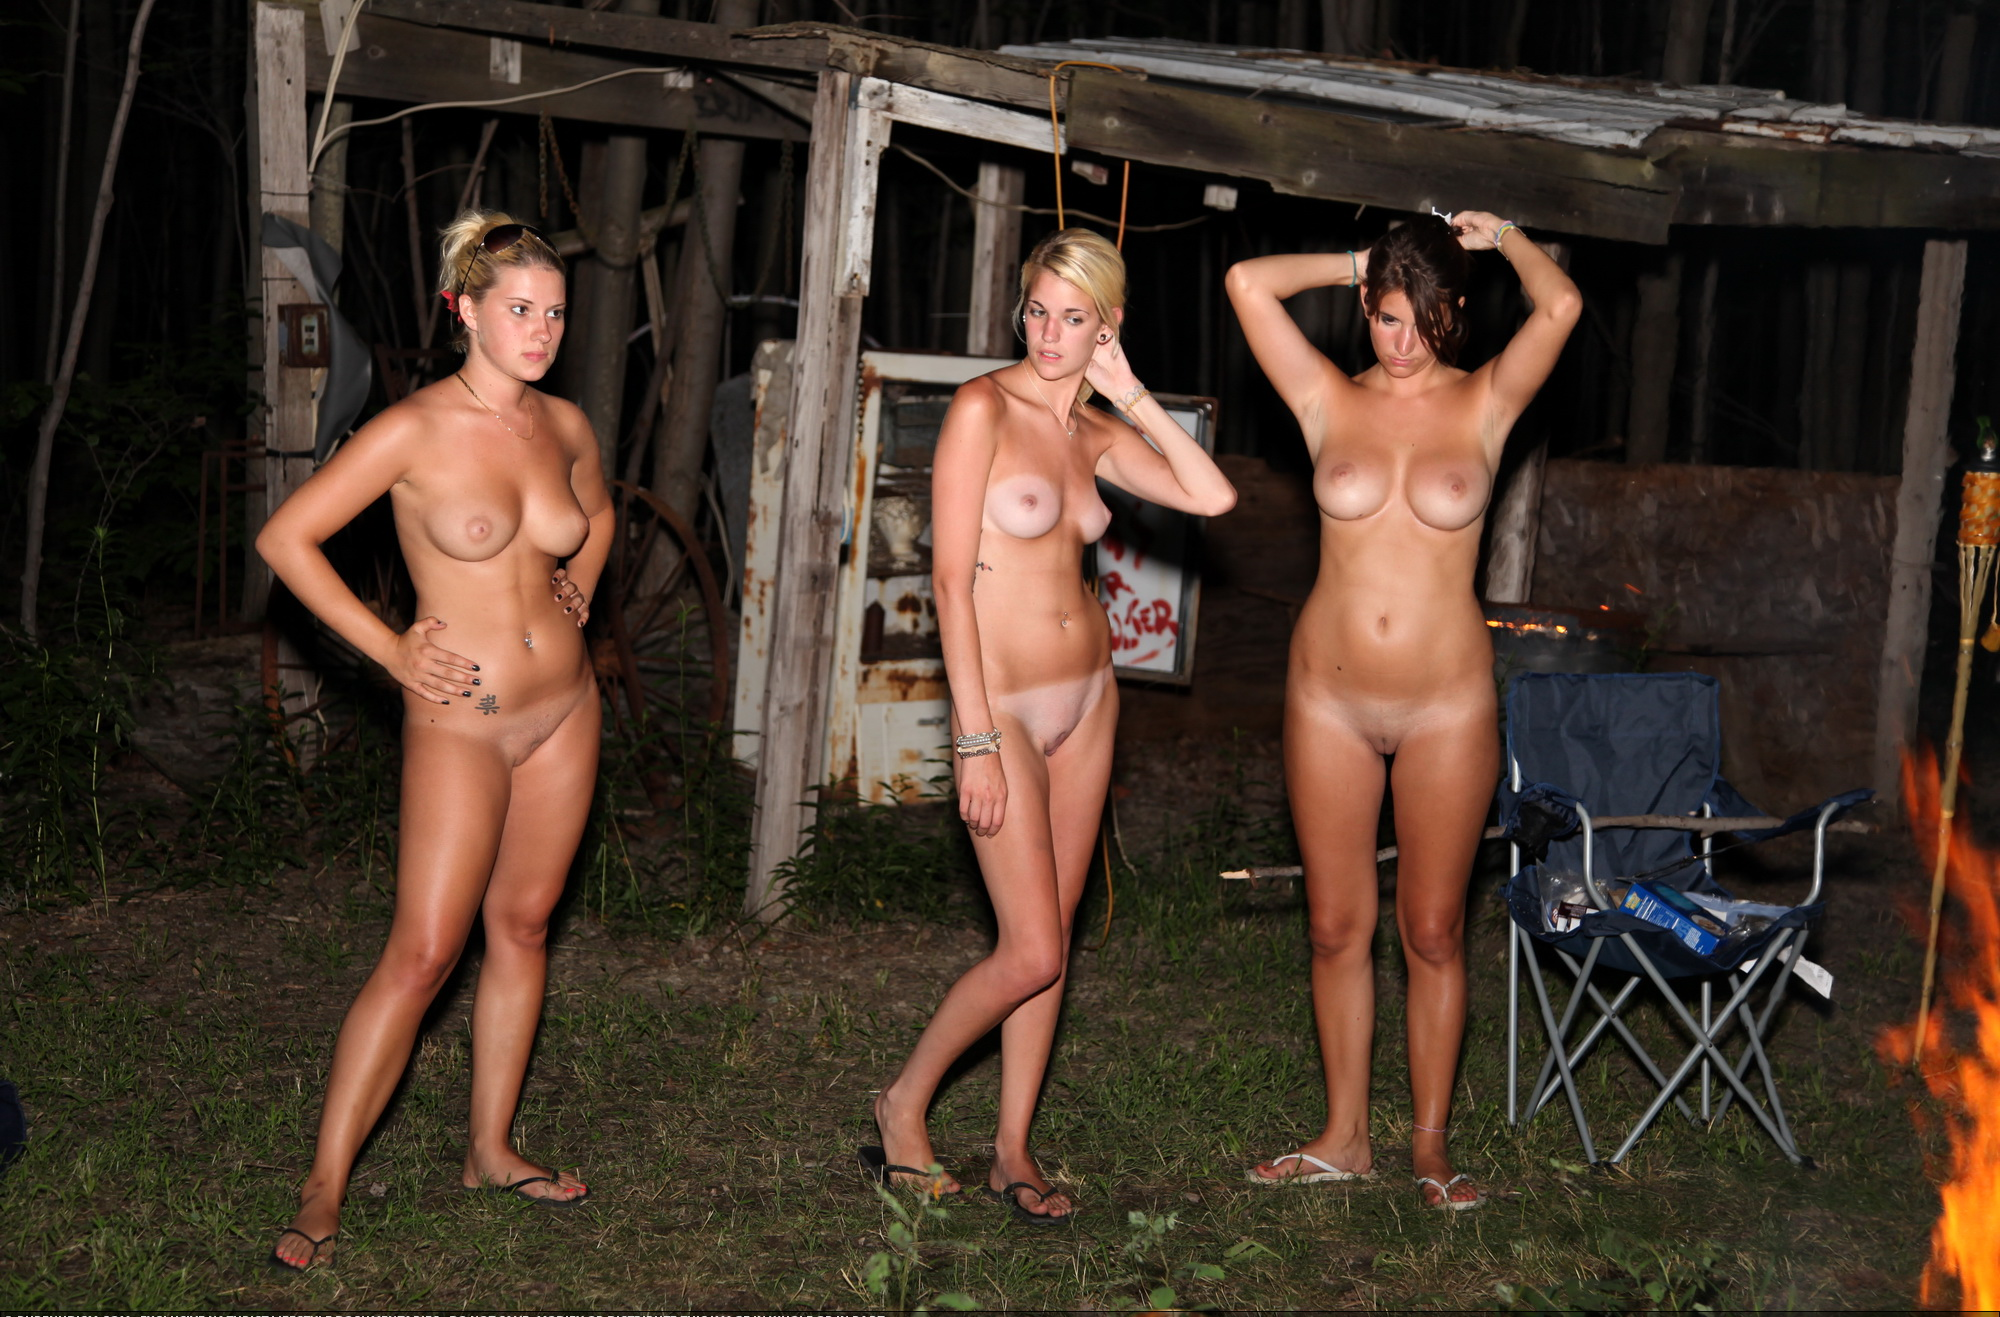 And girls fucked at nudist camps have